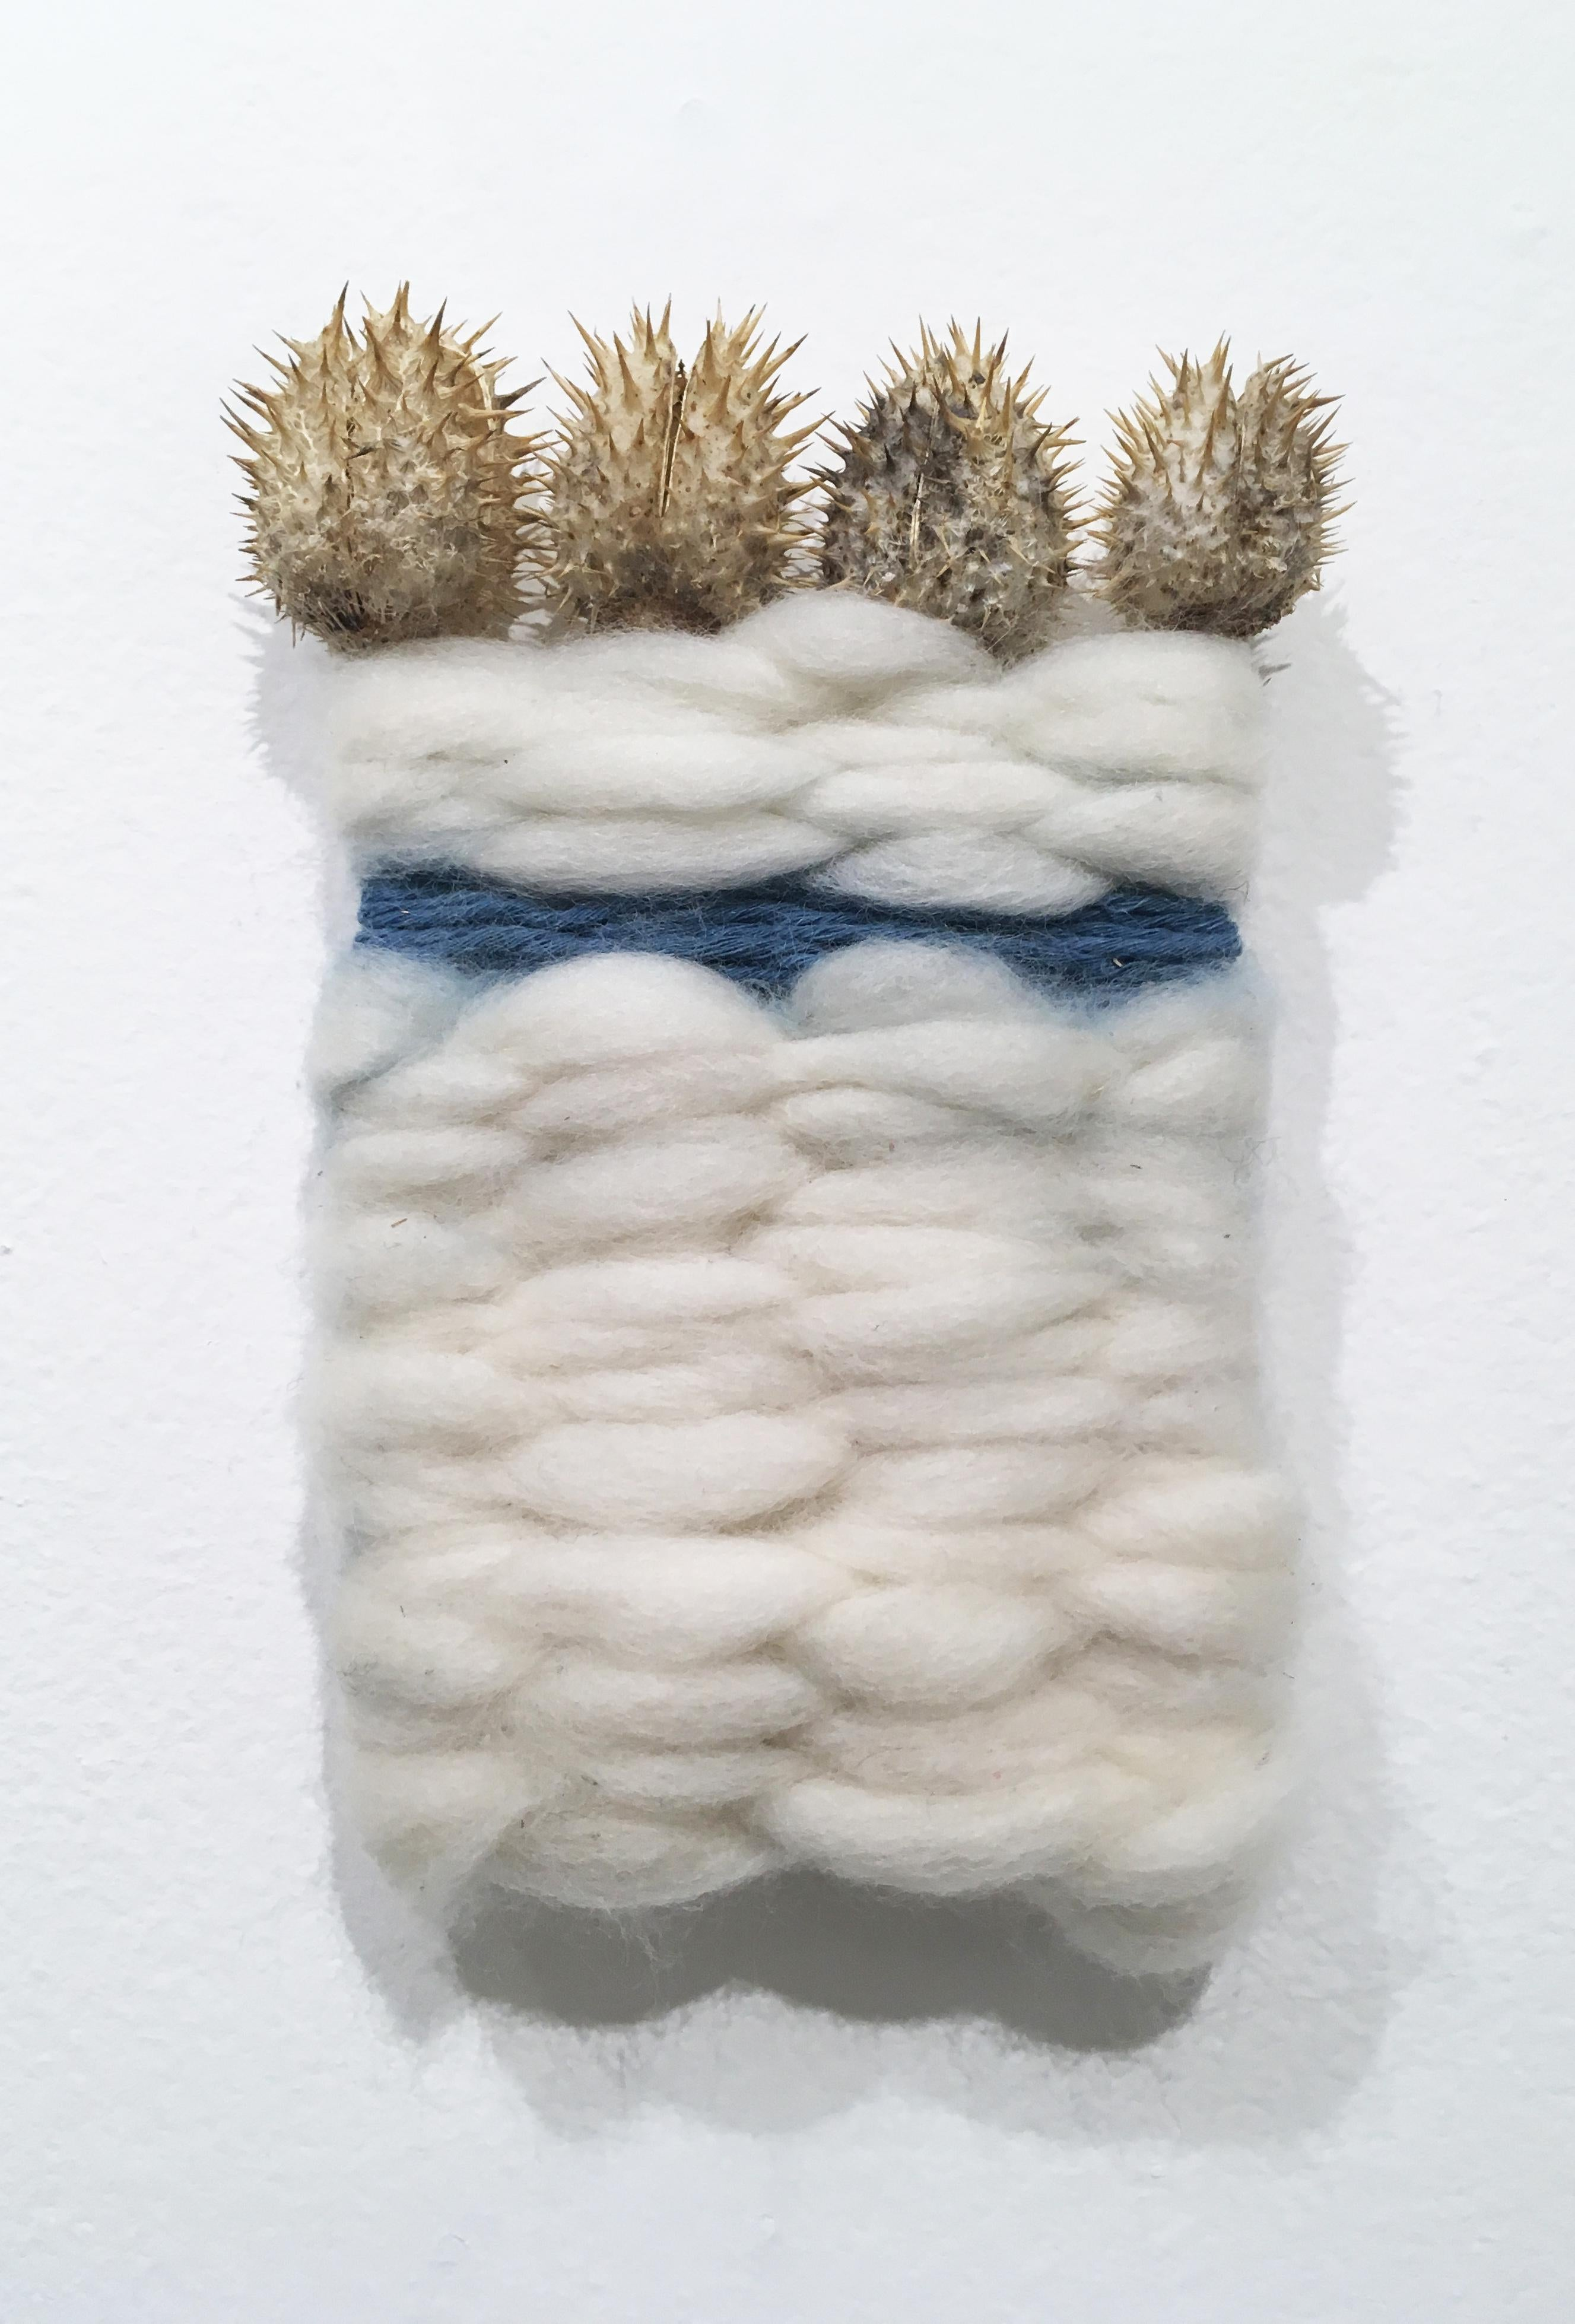 Wood and Thistle II, natural hand-dyed cotton, indigo, fabric, blue, wool, gold